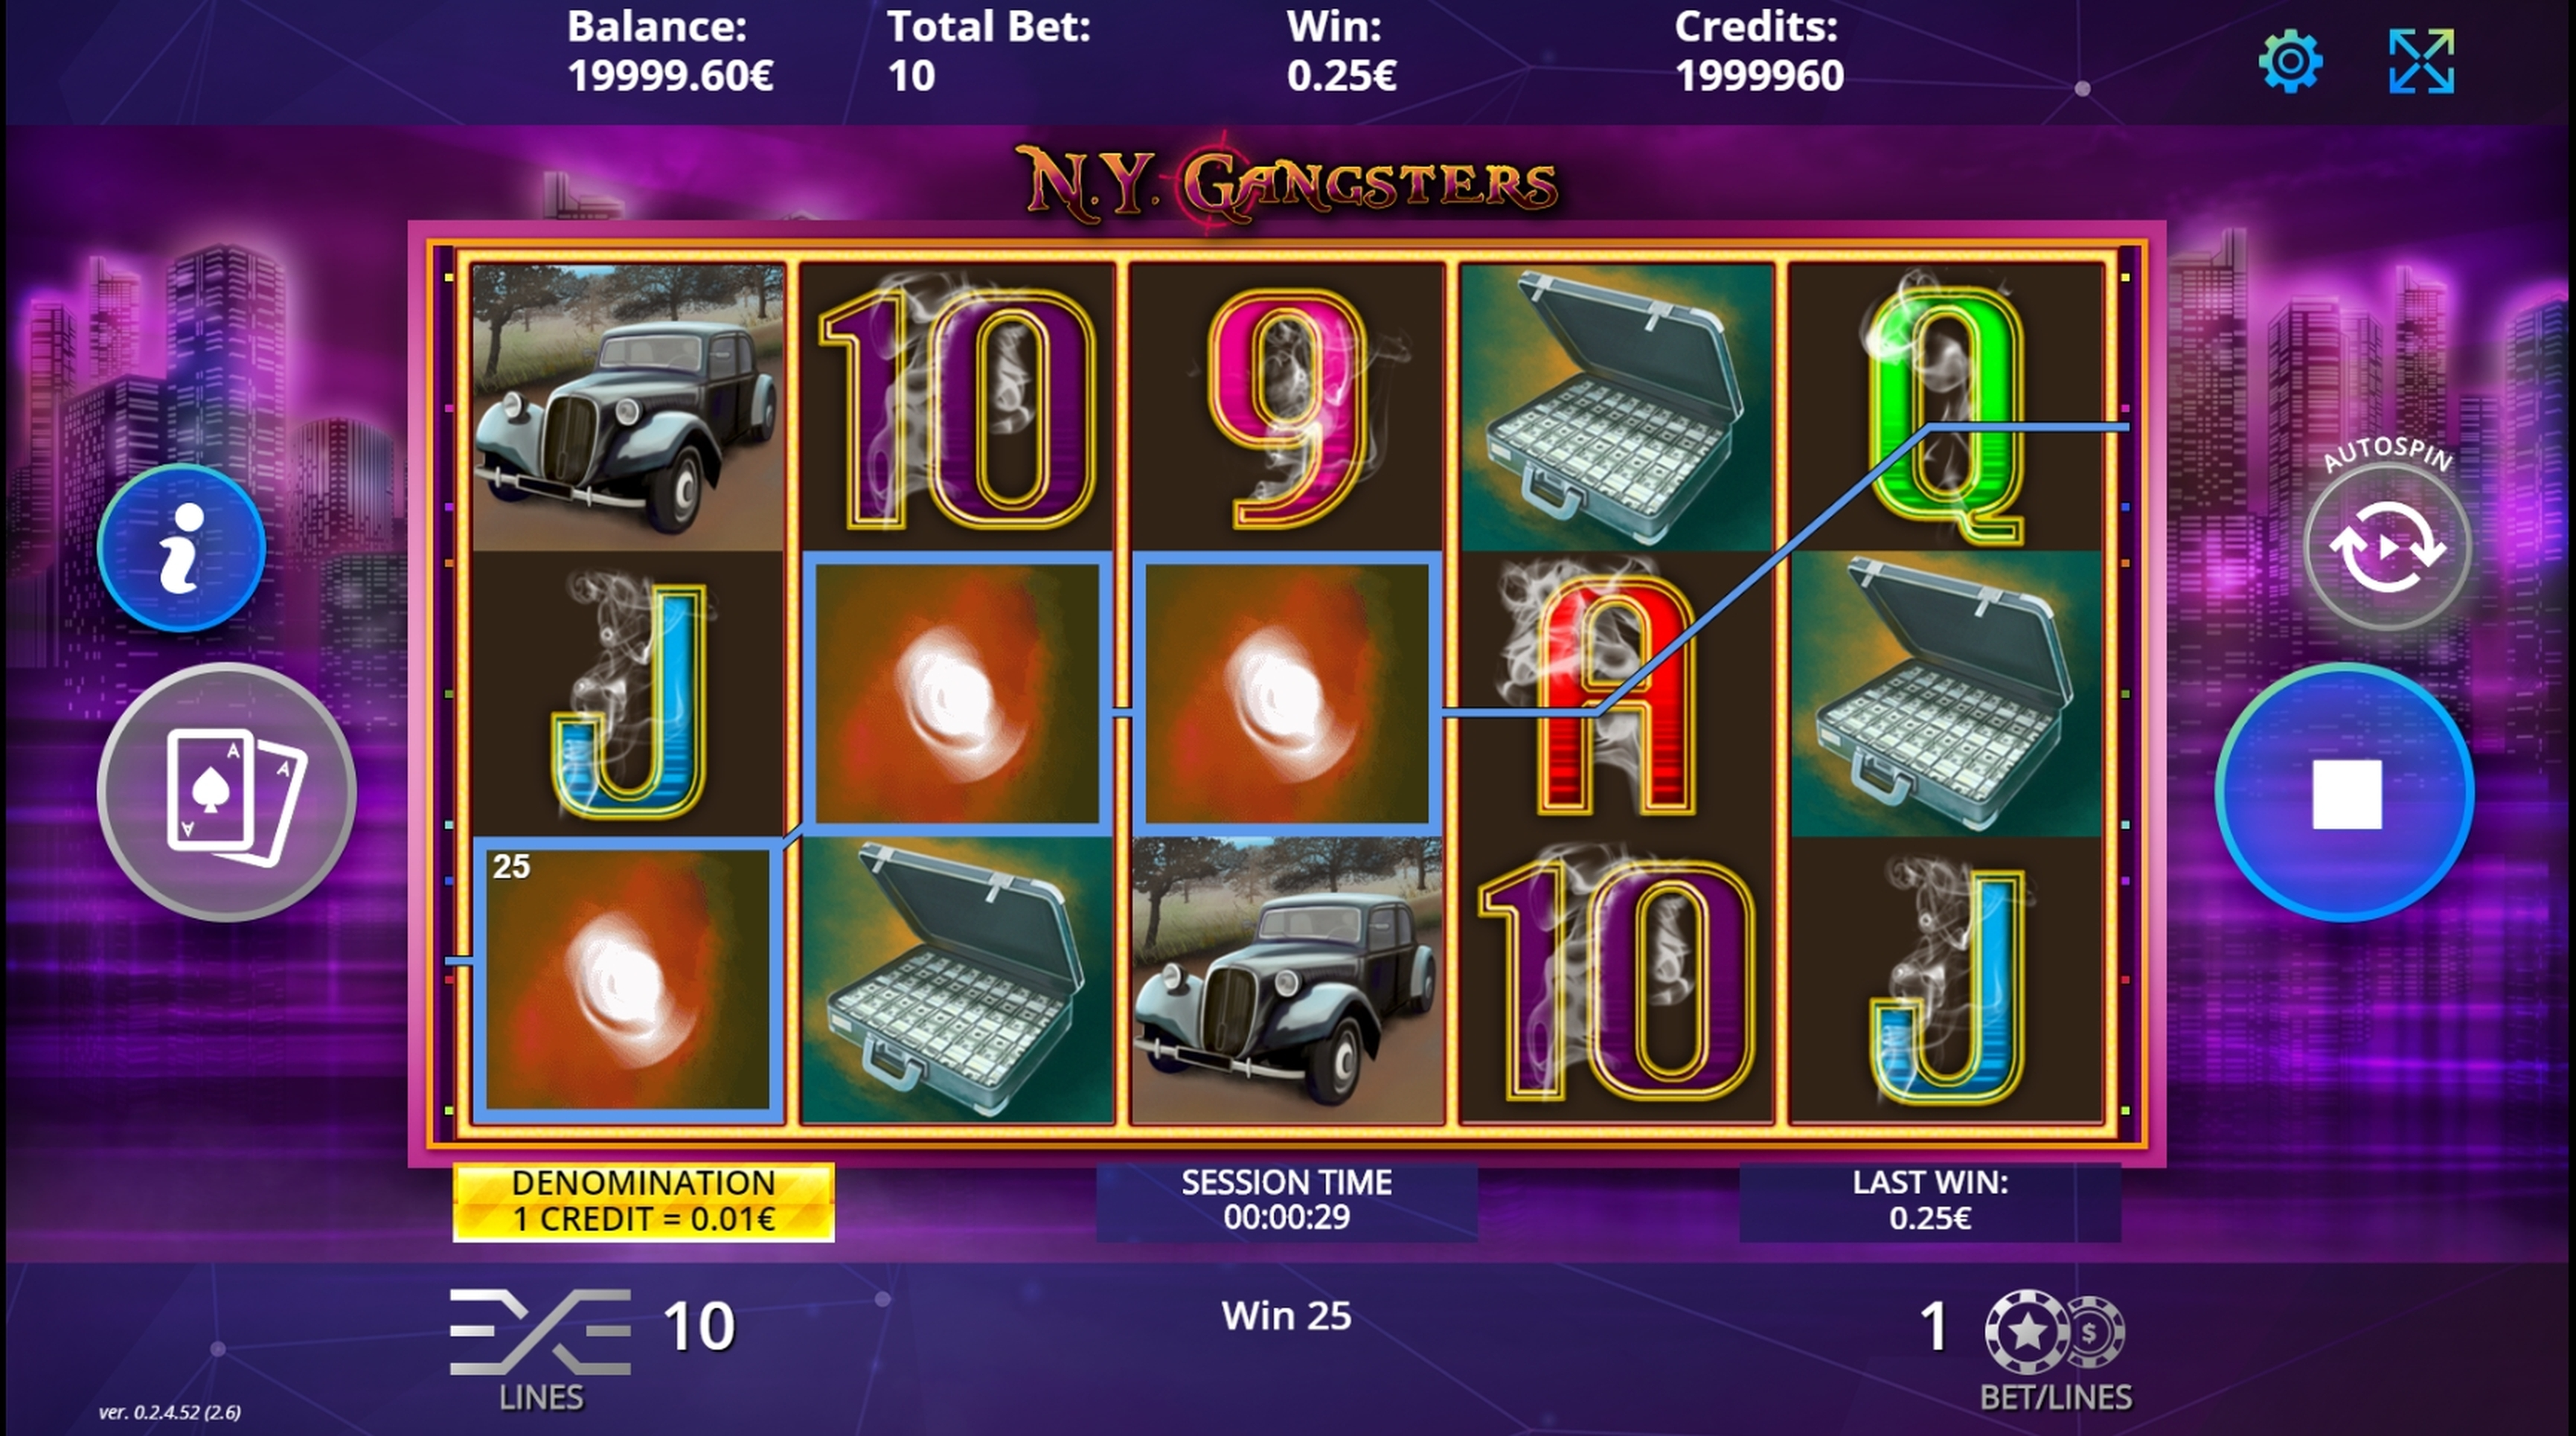 Win Money in N.Y. Gangsters Free Slot Game by DLV